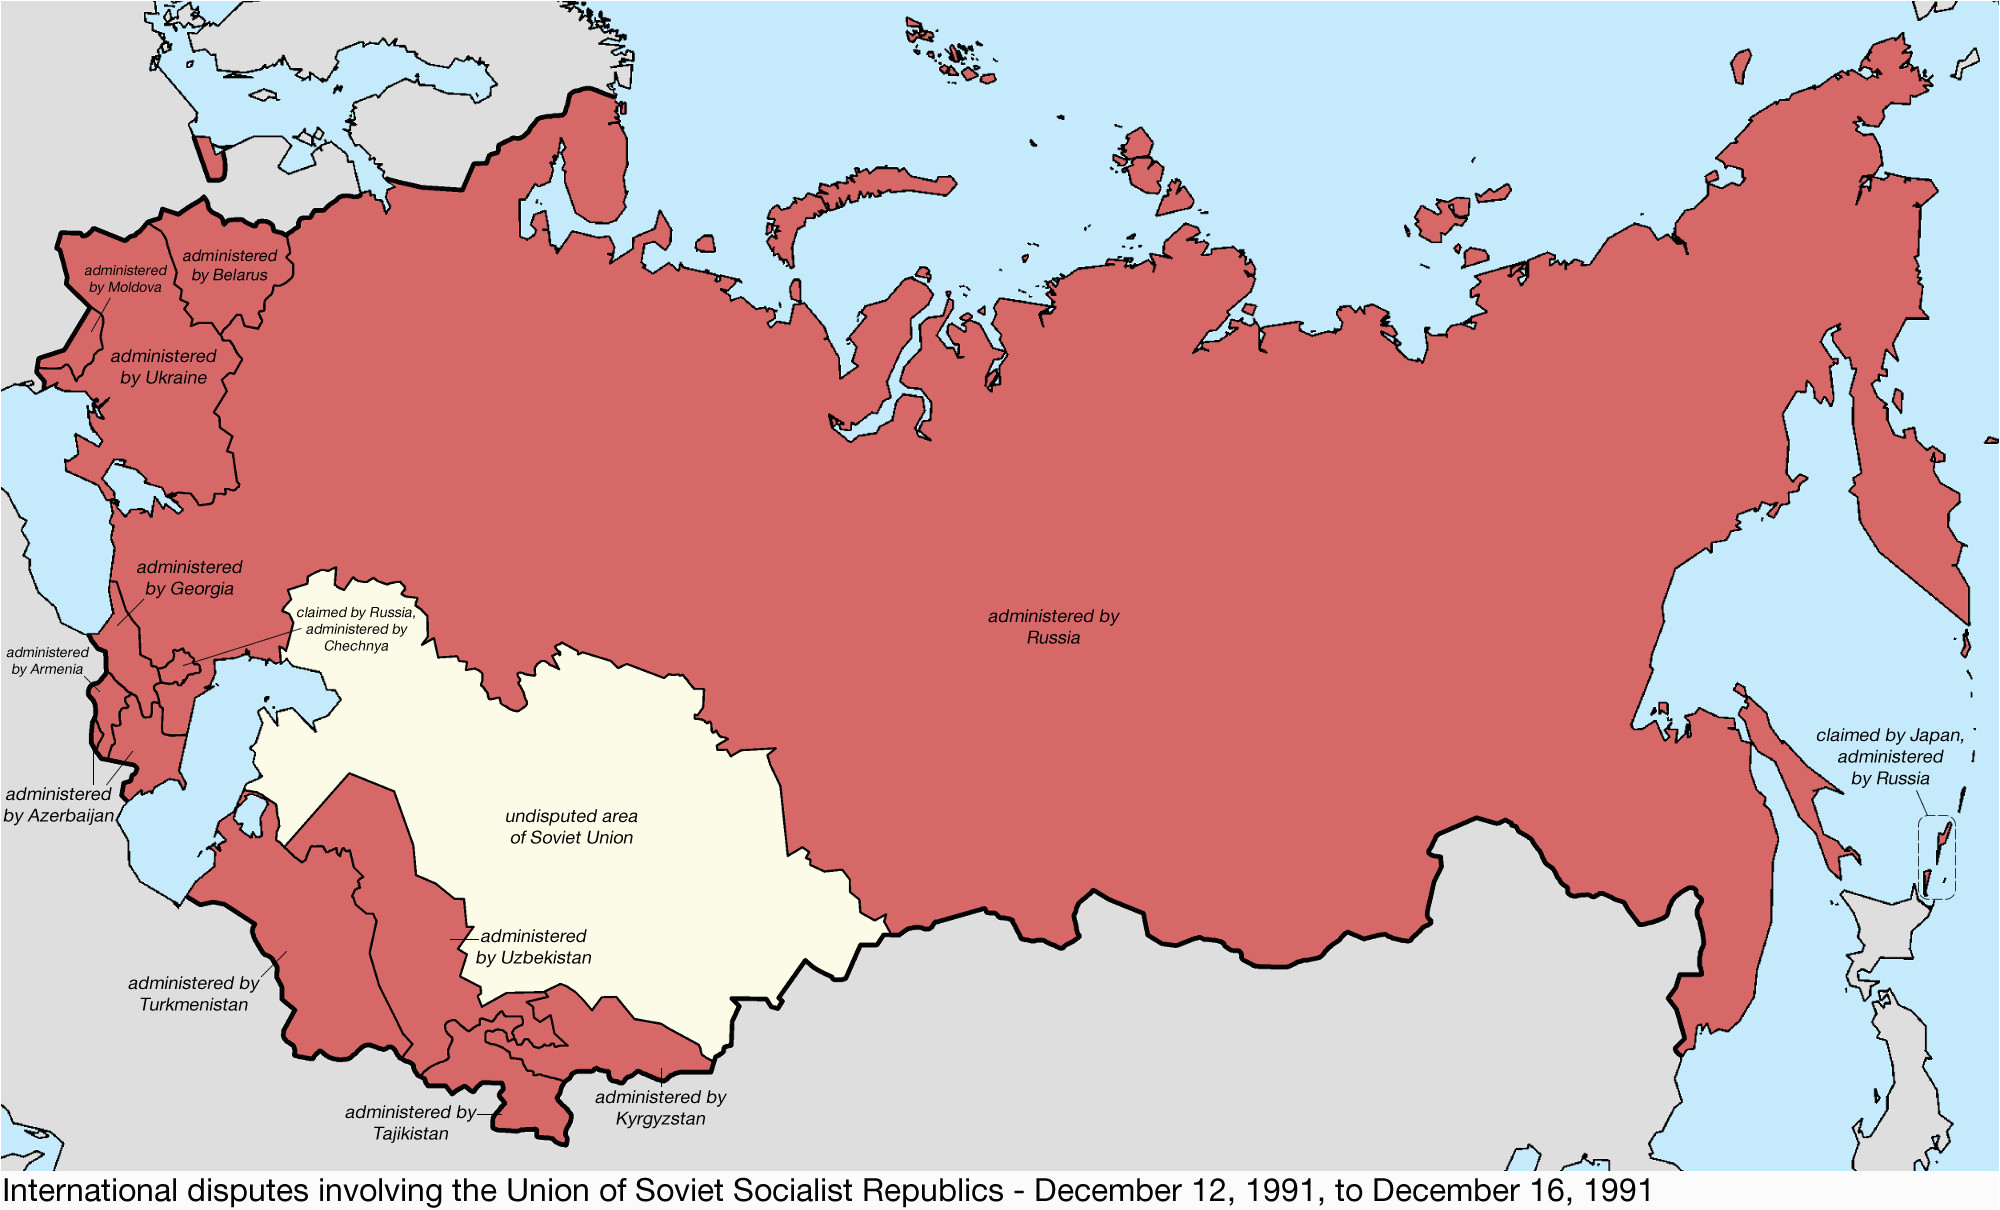 file soviet union disputes 1991 12 12 to 1991 12 16 png wikimedia